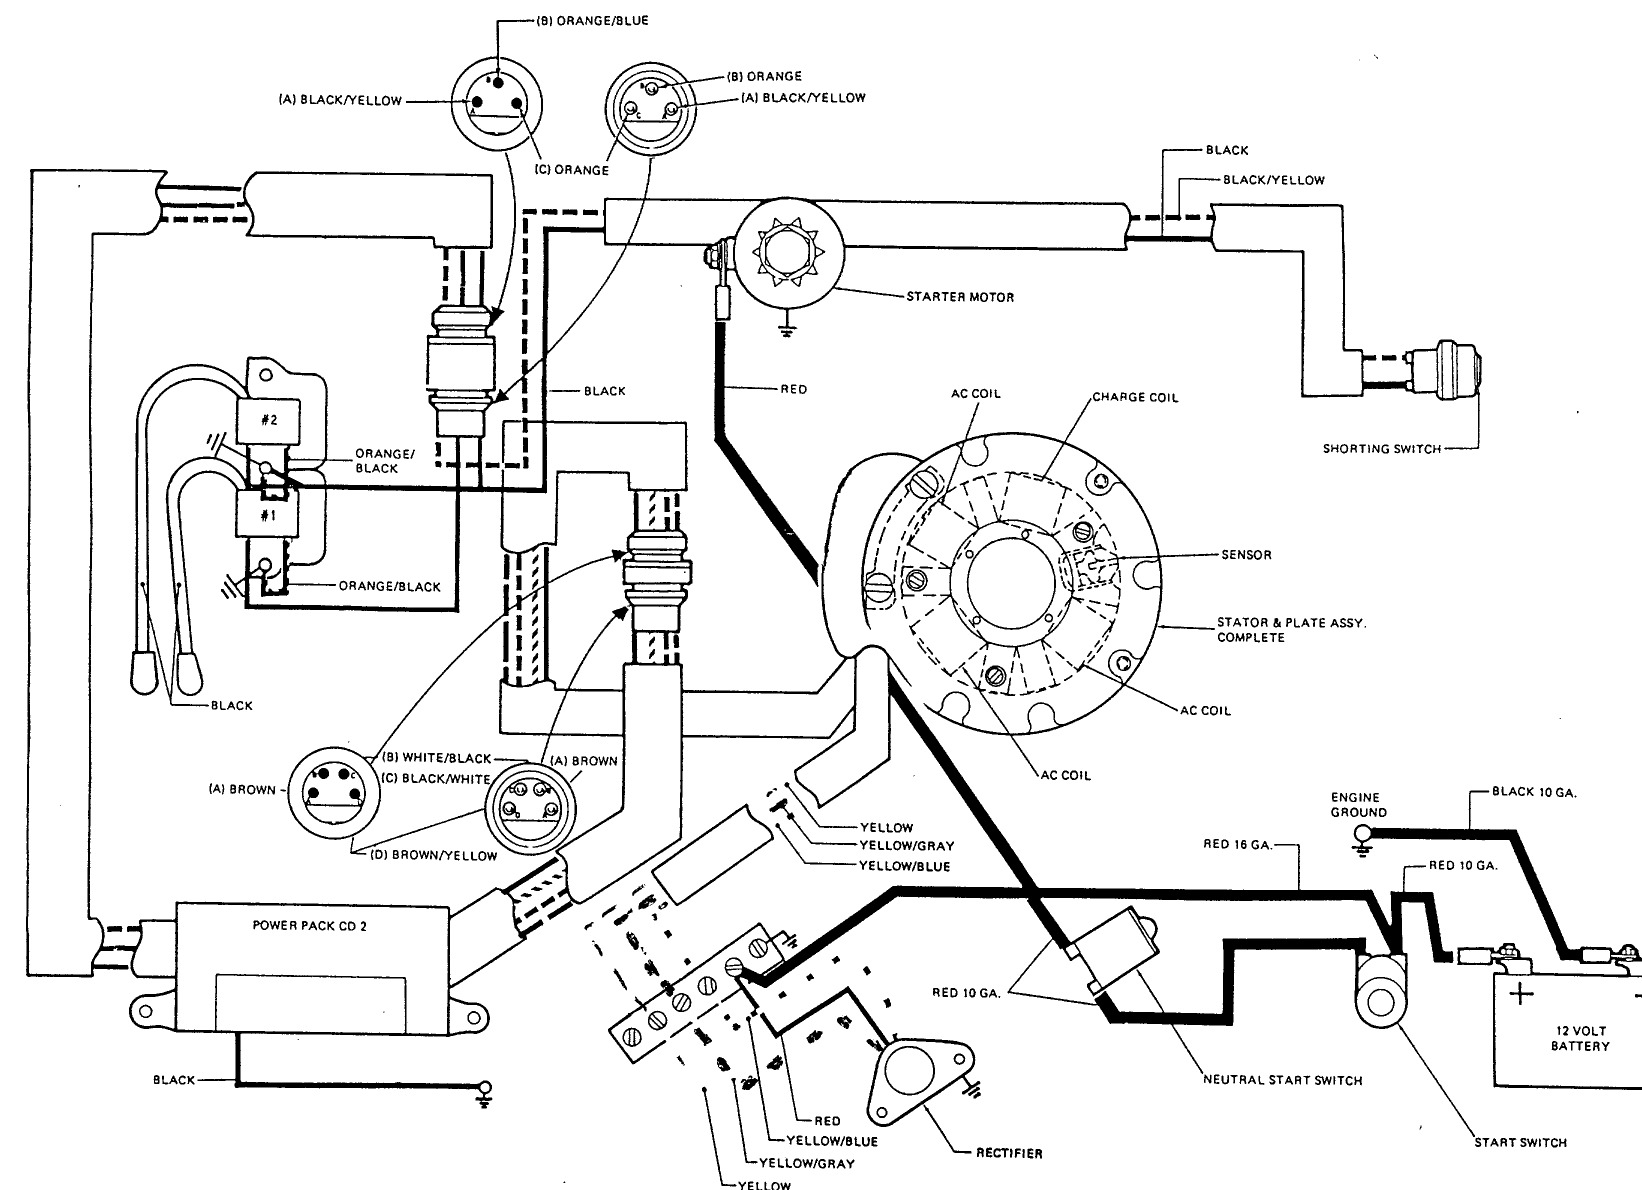 Evinrude Outboard Kill Switch Wiring Modern Design Of Diagram Battery Omc Schema Diagrams Rh 46 Pur Tribute De Ignition